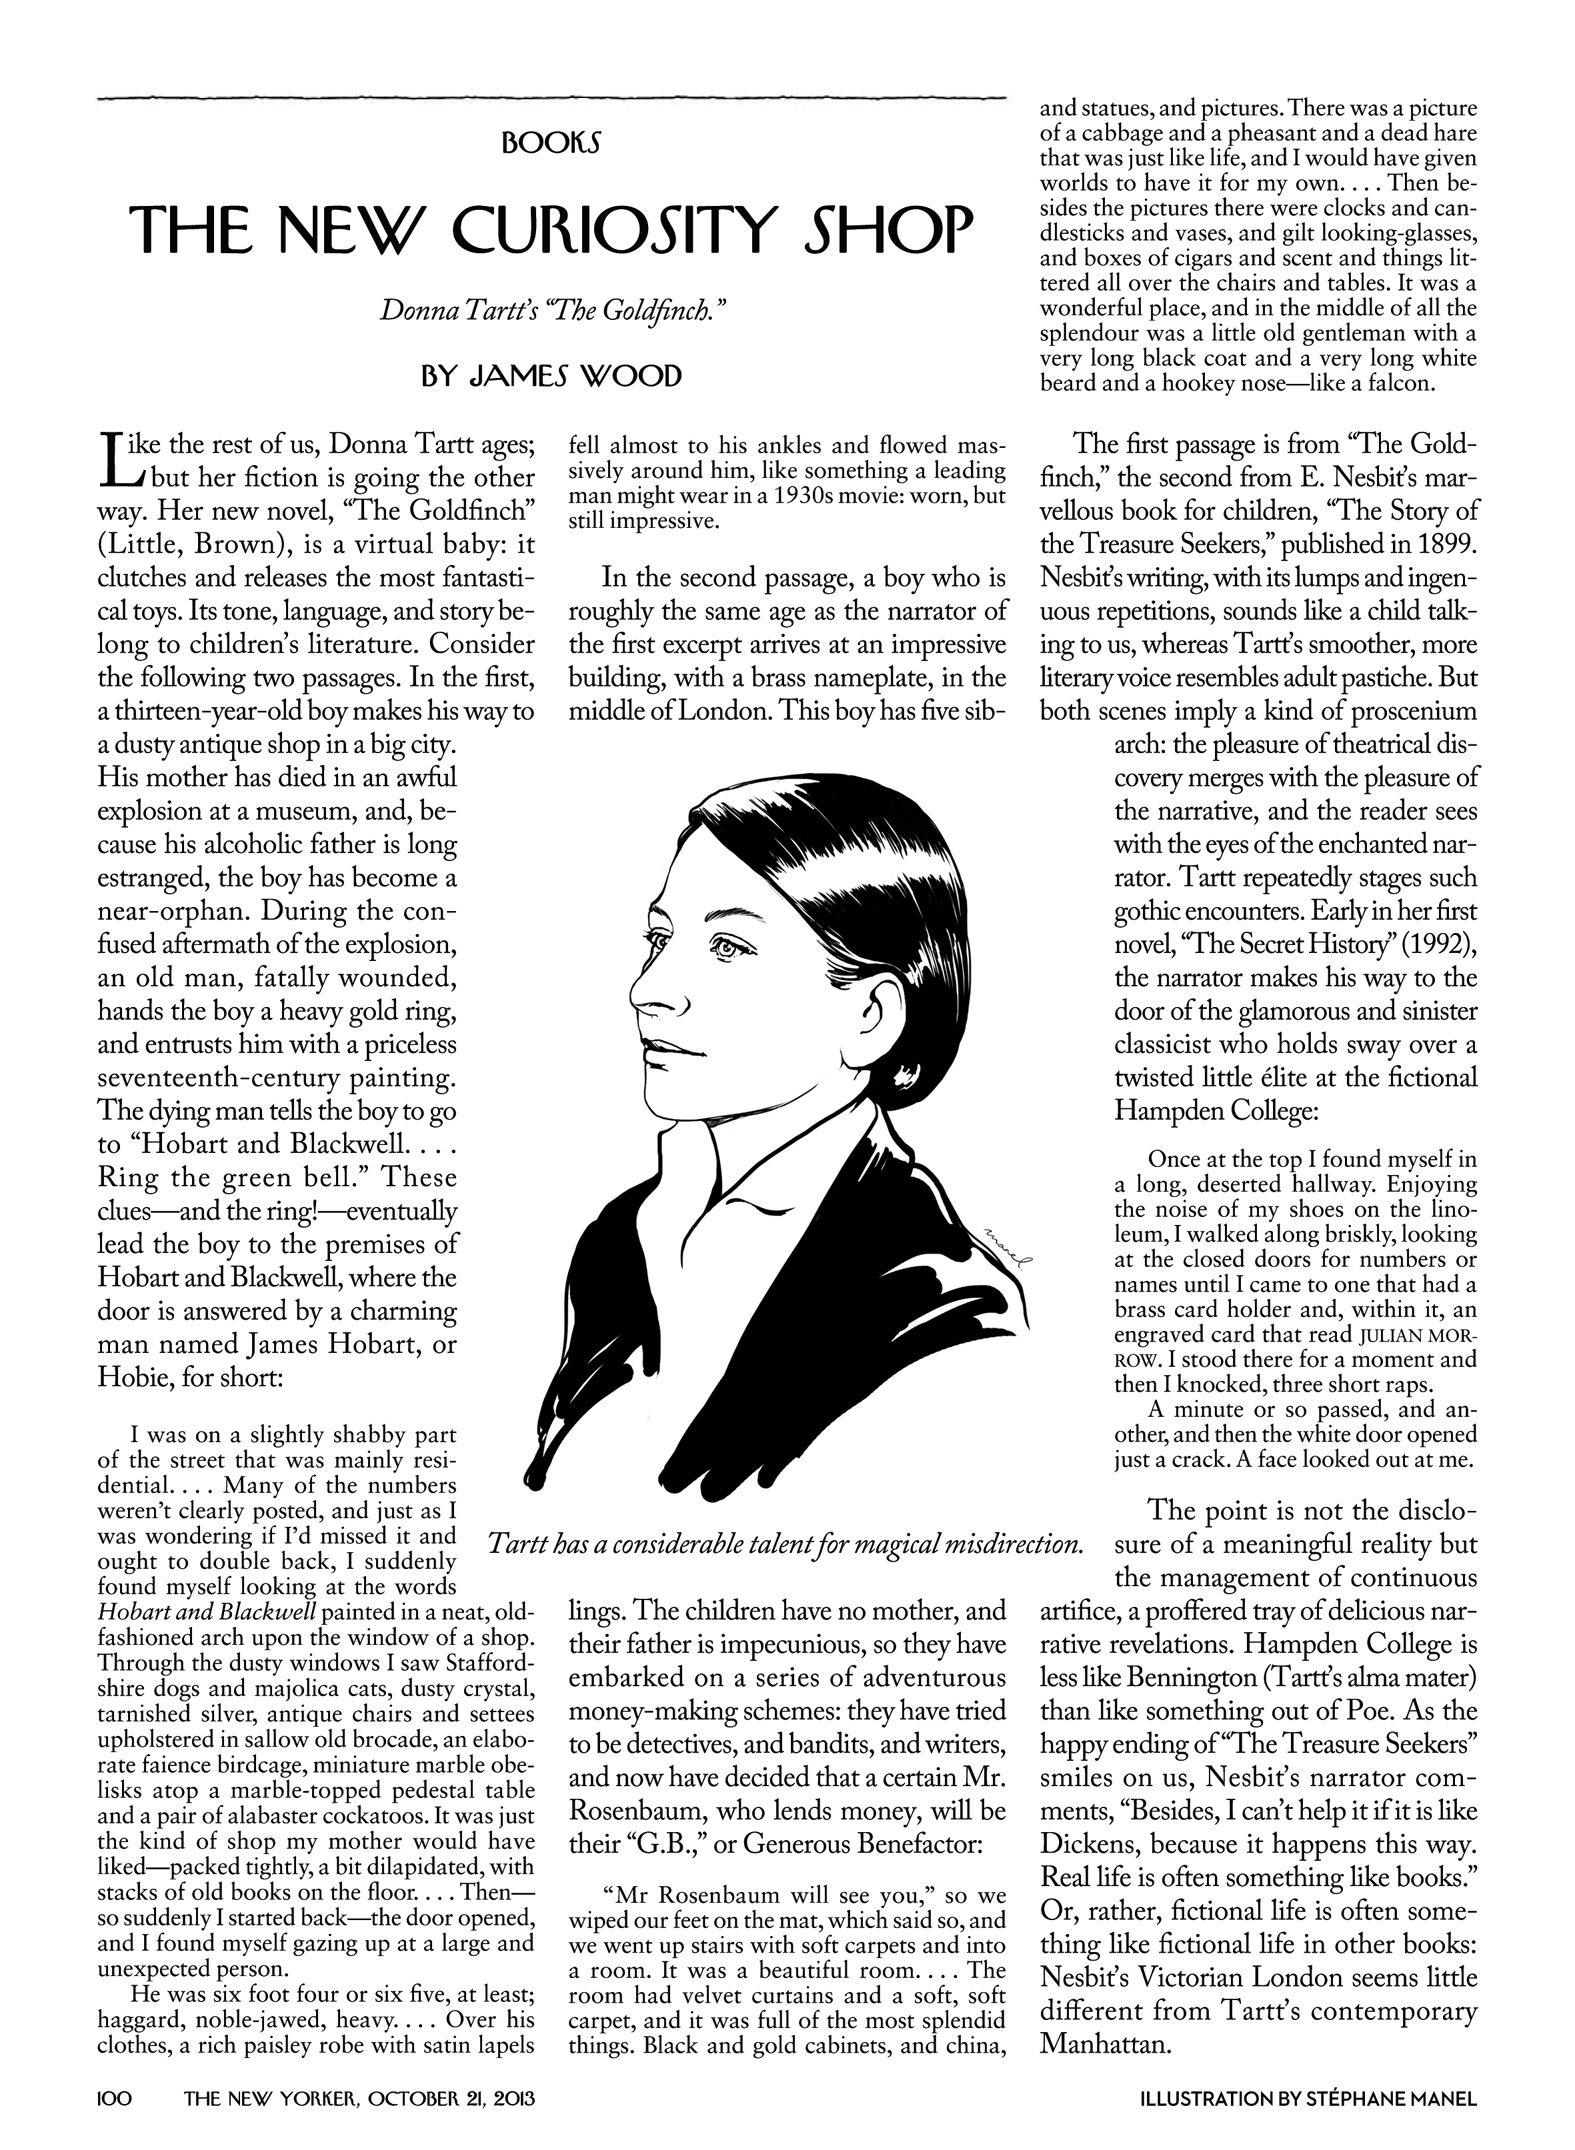 The New Curiosity Shop / The New Yorker